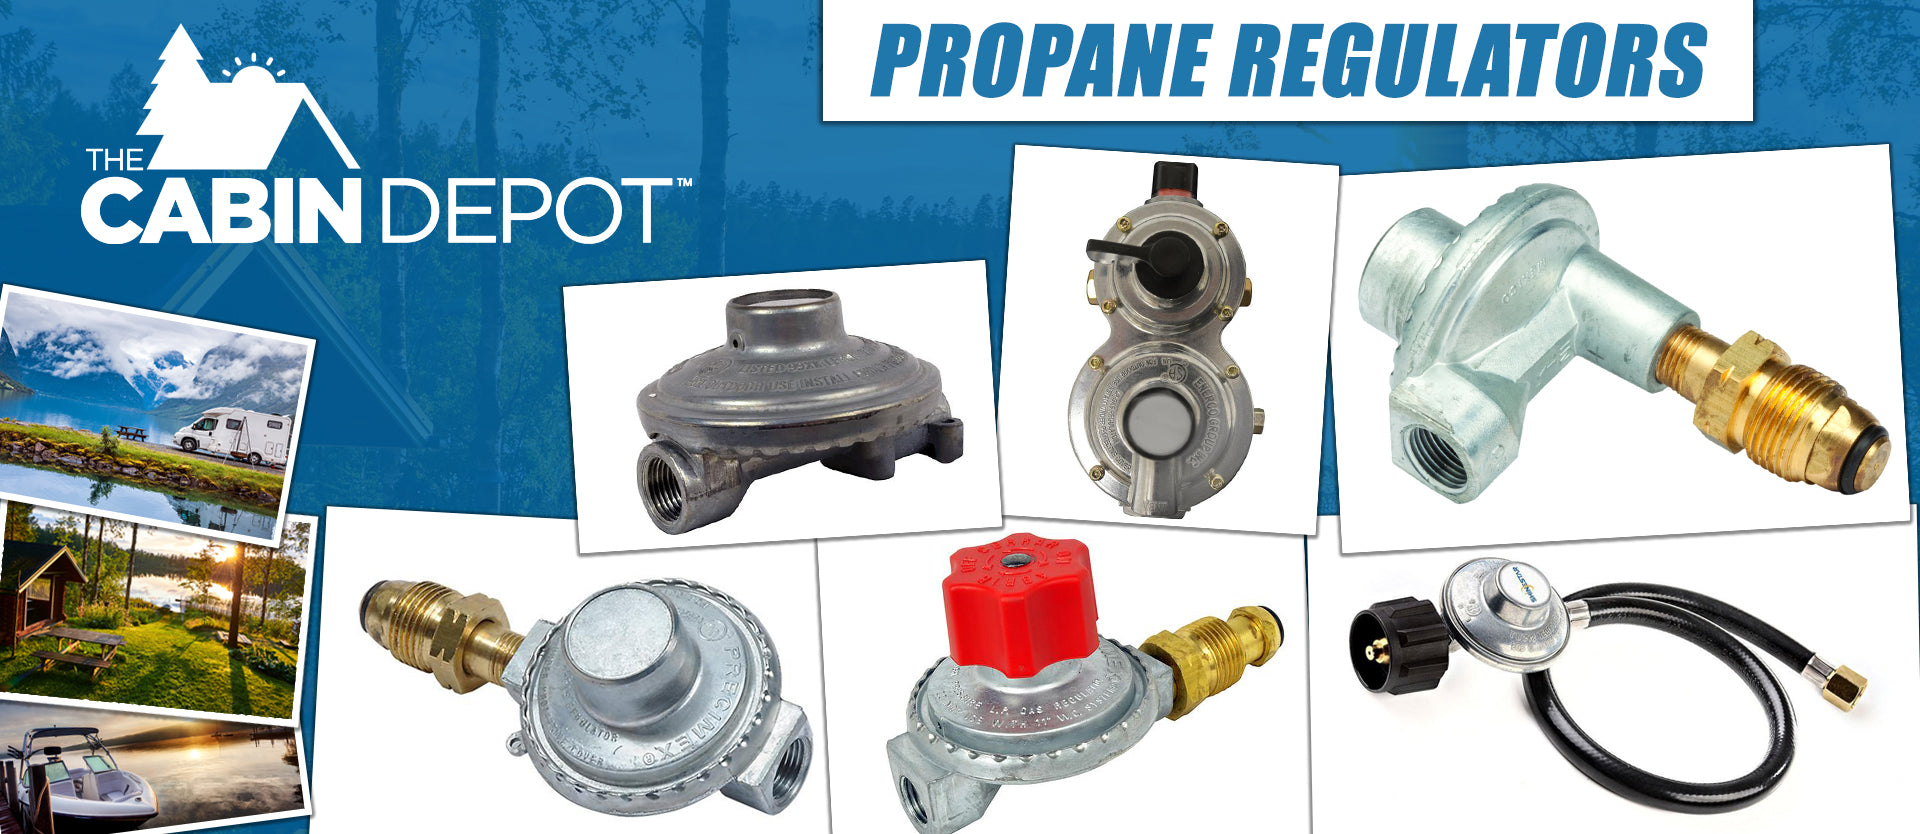 Propane Regulators The Cabin Depot ™ Canada